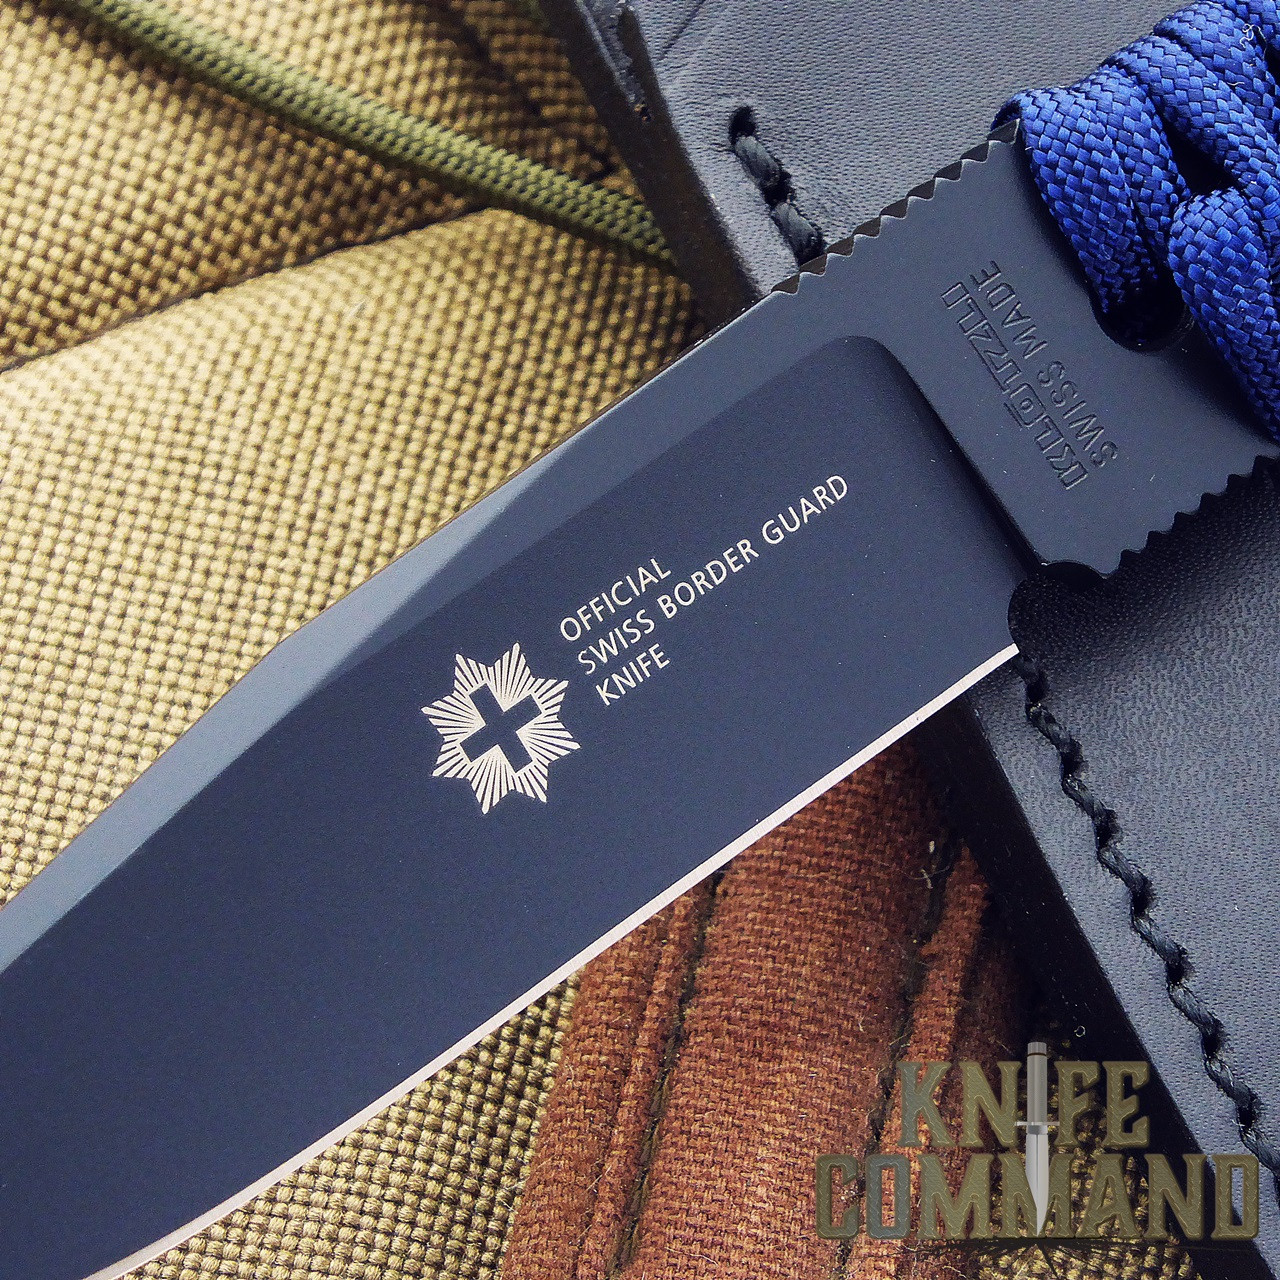 Klotzli Knives Official Swiss Border Guard Knife.  Marked with the official logo.